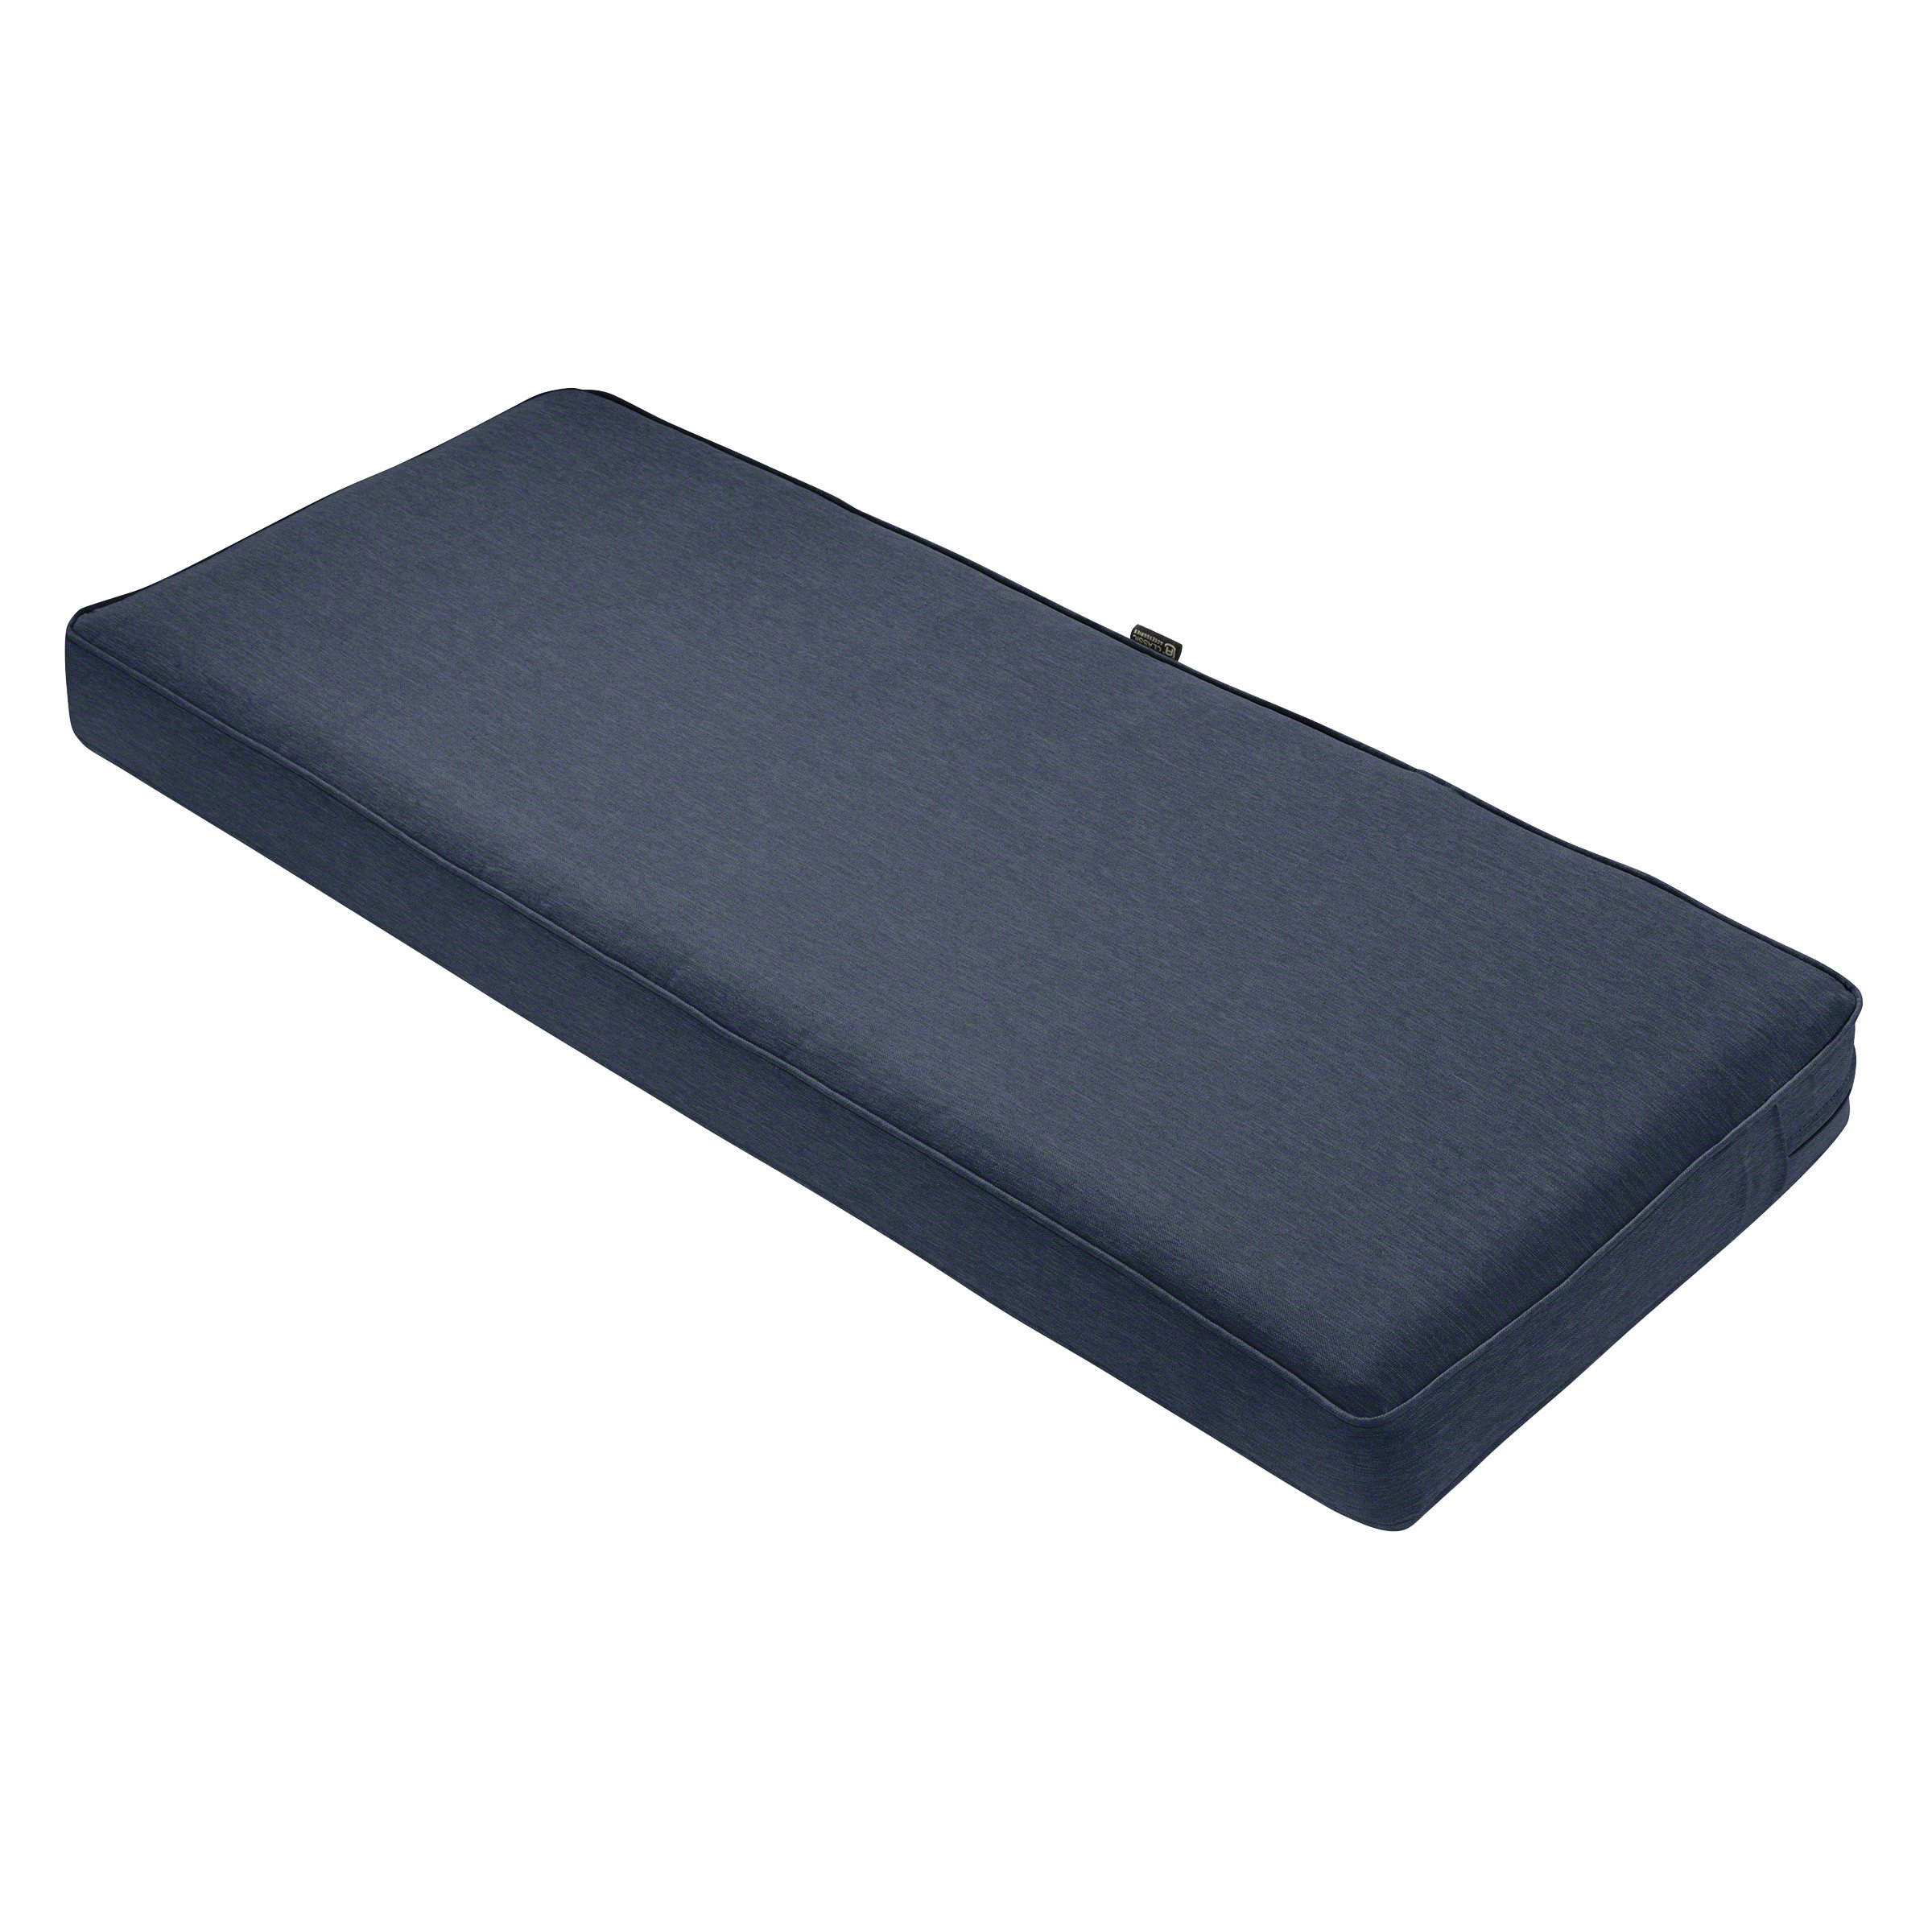 Classic Accessories Montlake Bench Cushion Foam & Slip Cover, Heather Indigo, 42x18x3'' Thick